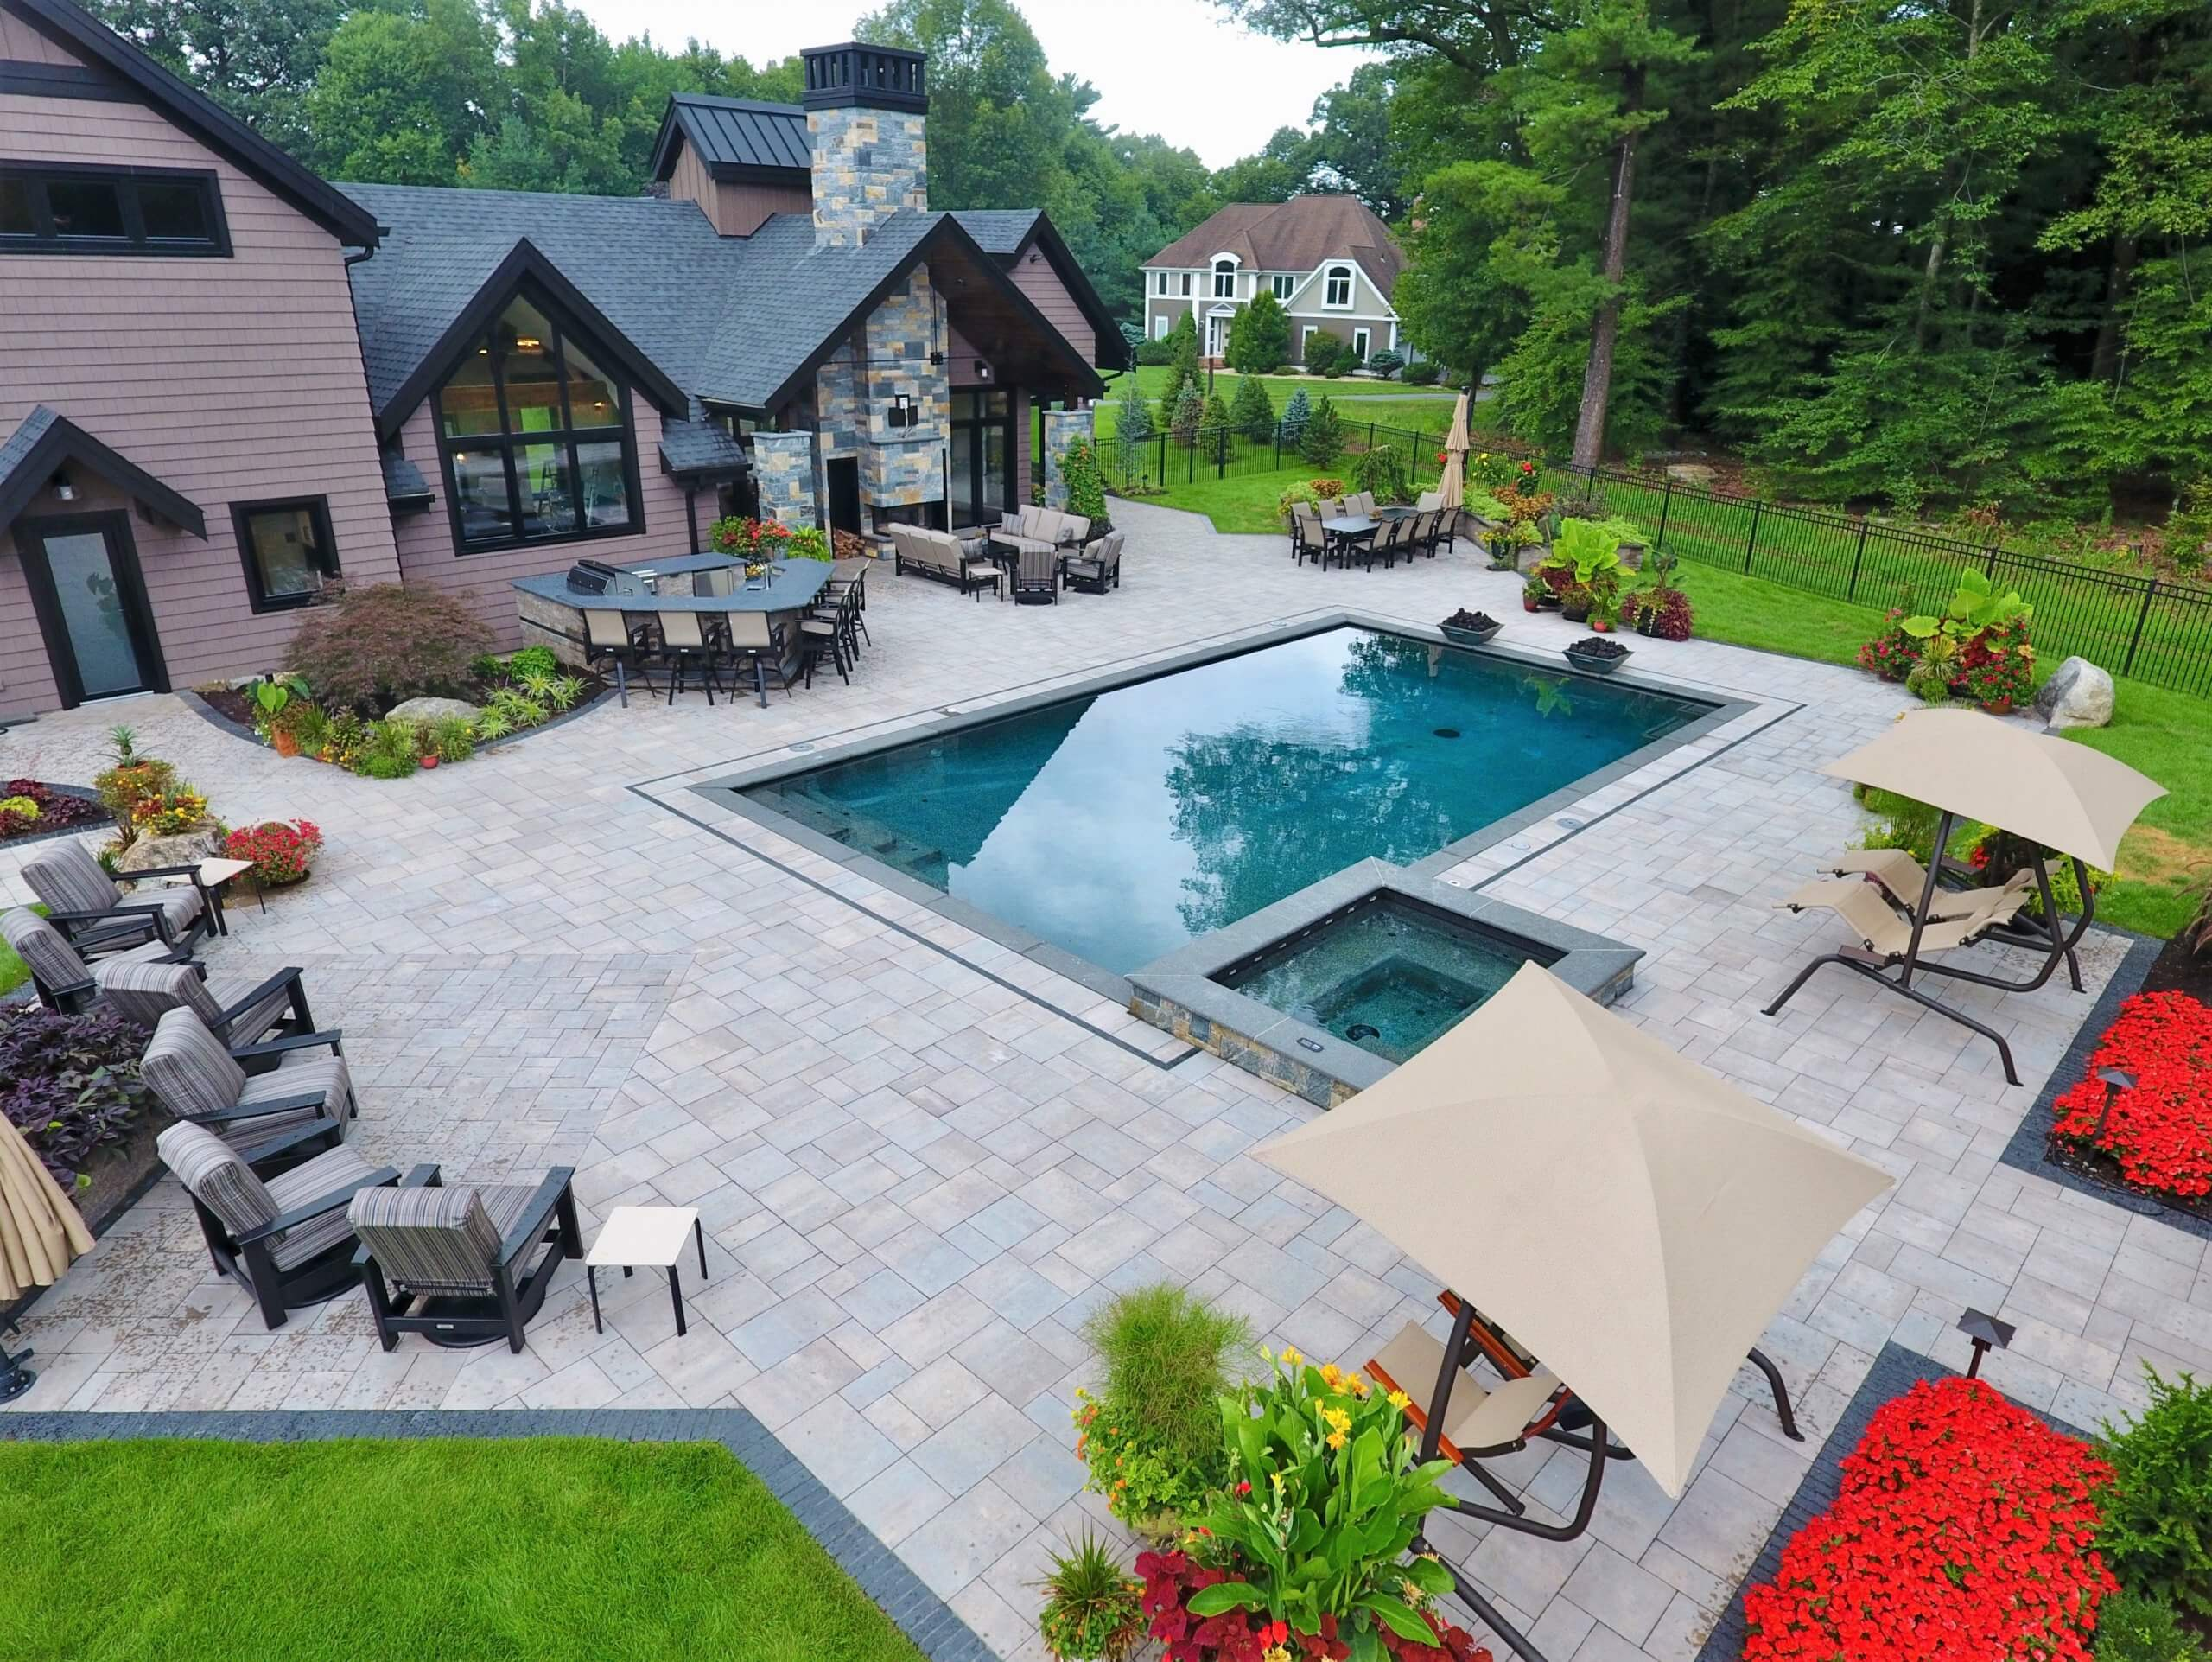 How to Build a Pool That is Perfect for Staycations